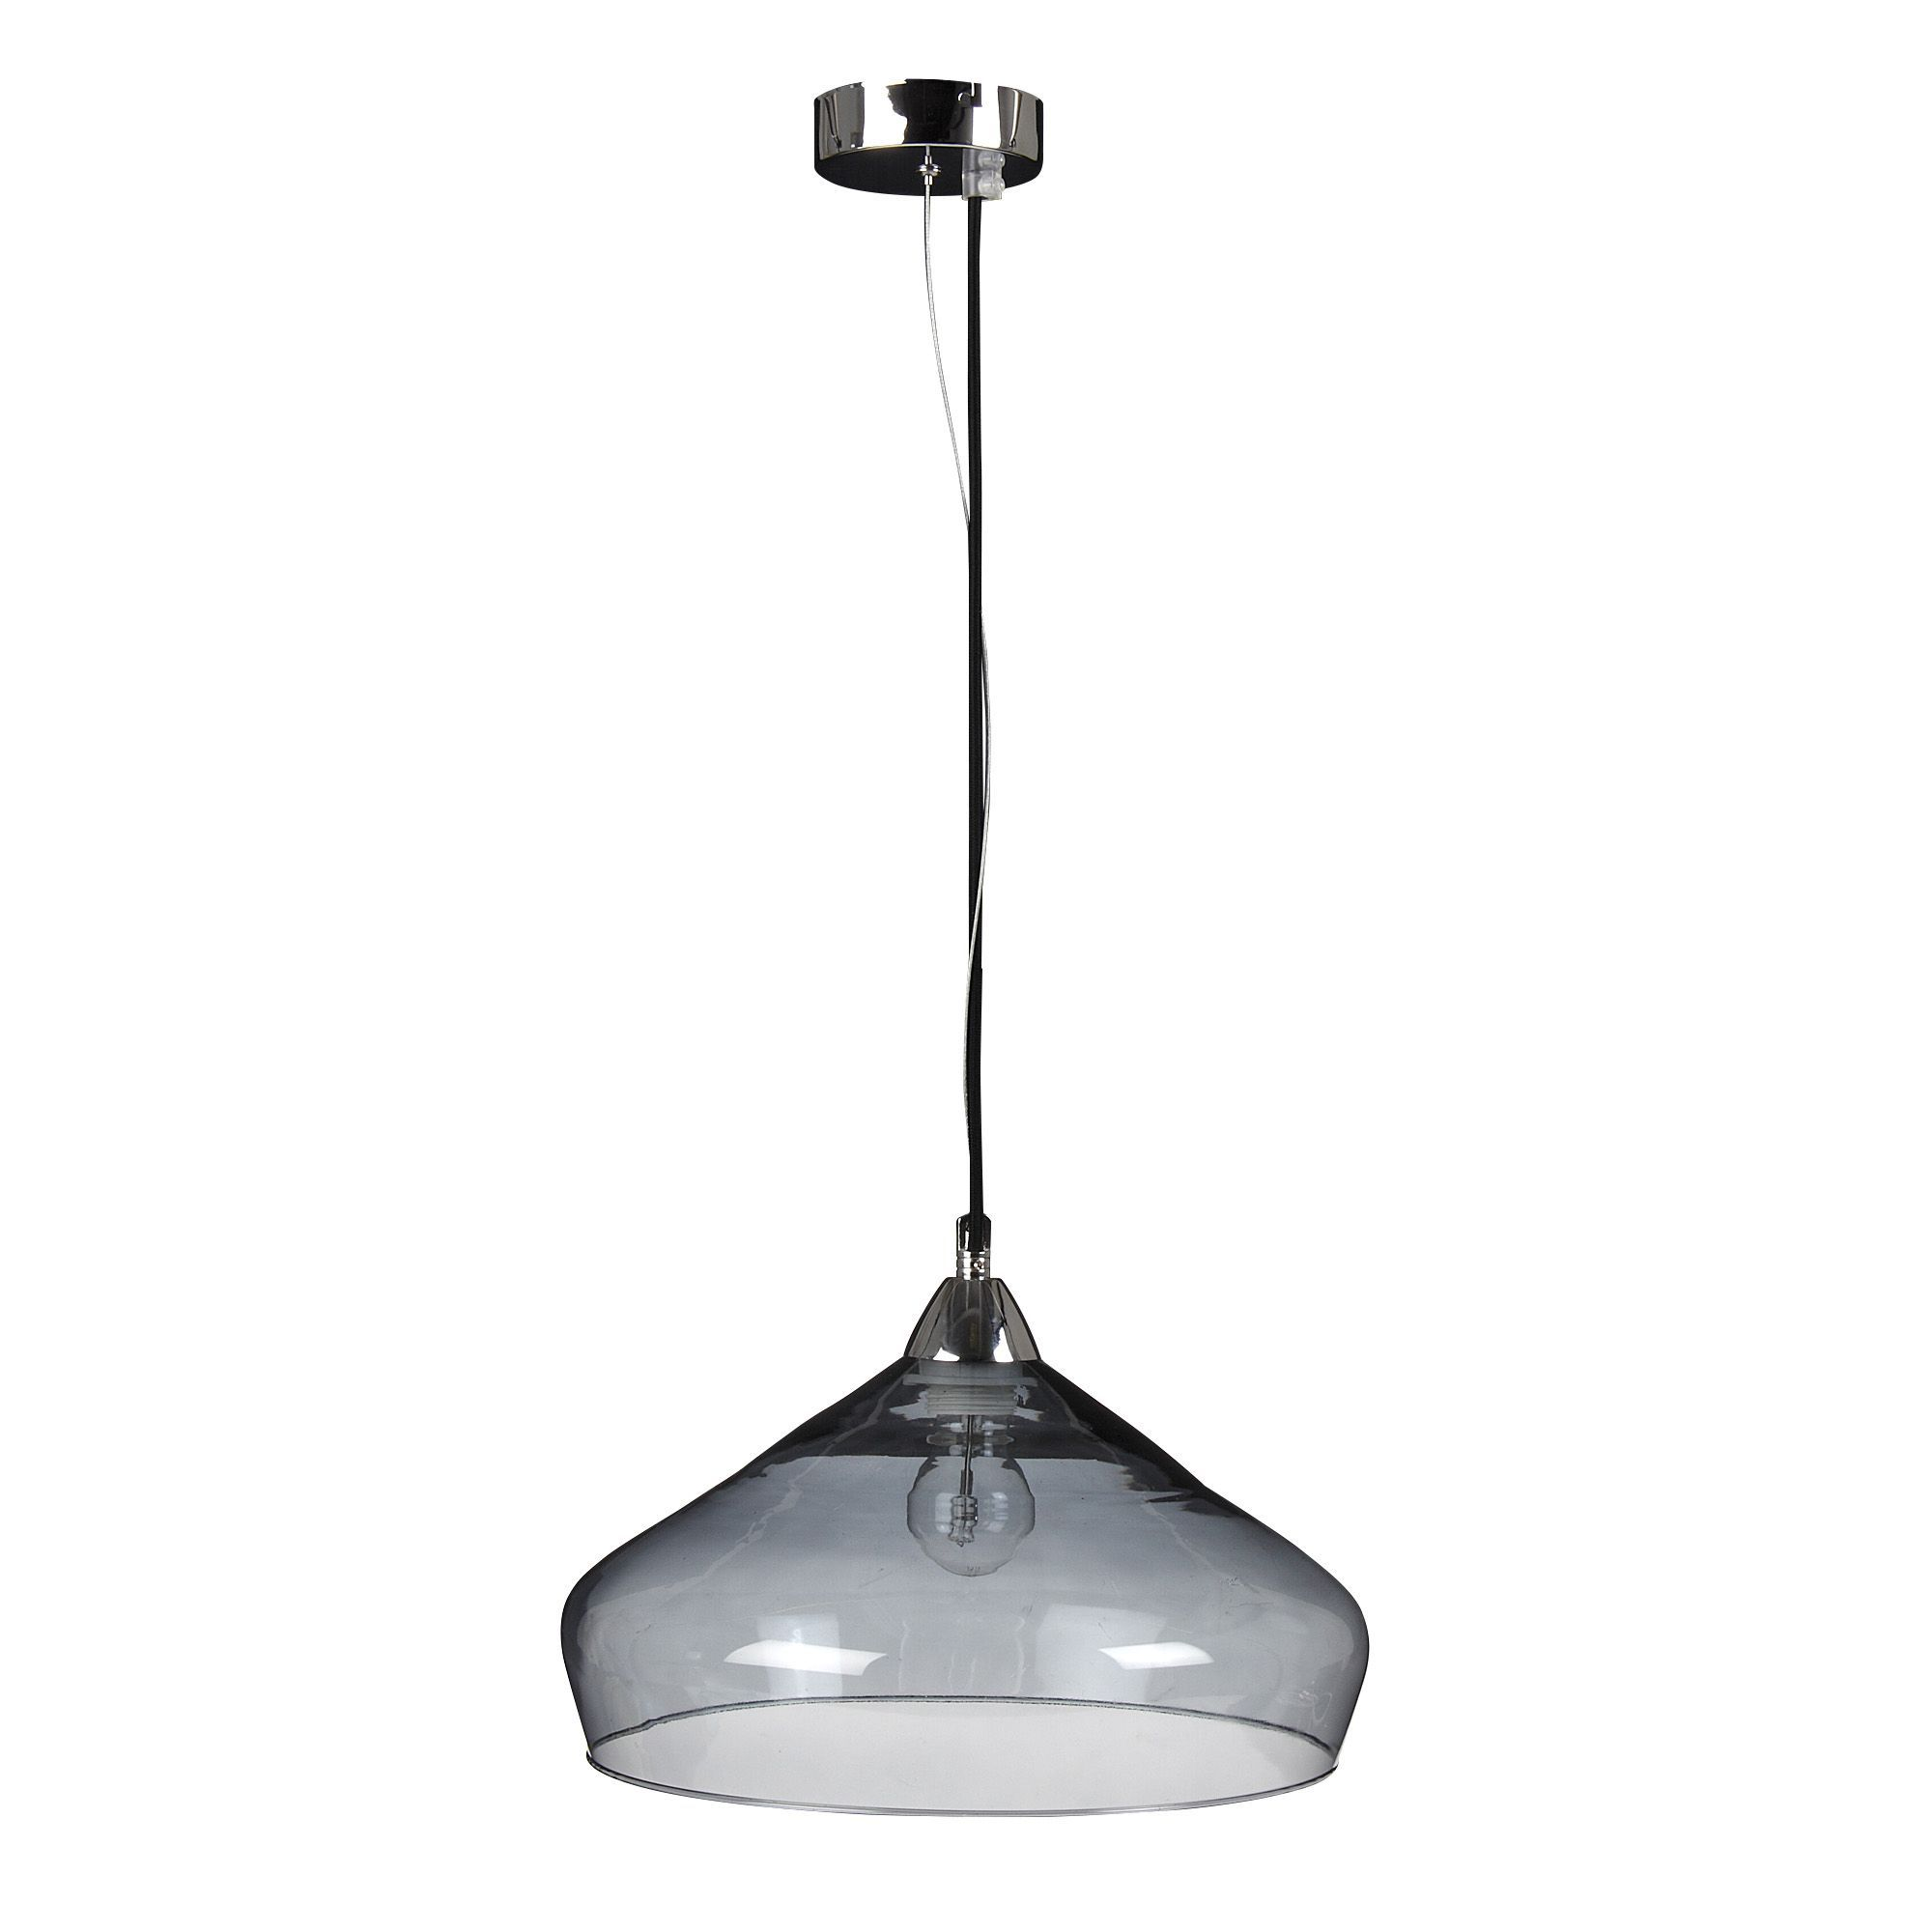 Suspension verre fum d30cm transparent estambul les for Luminaire suspension salon